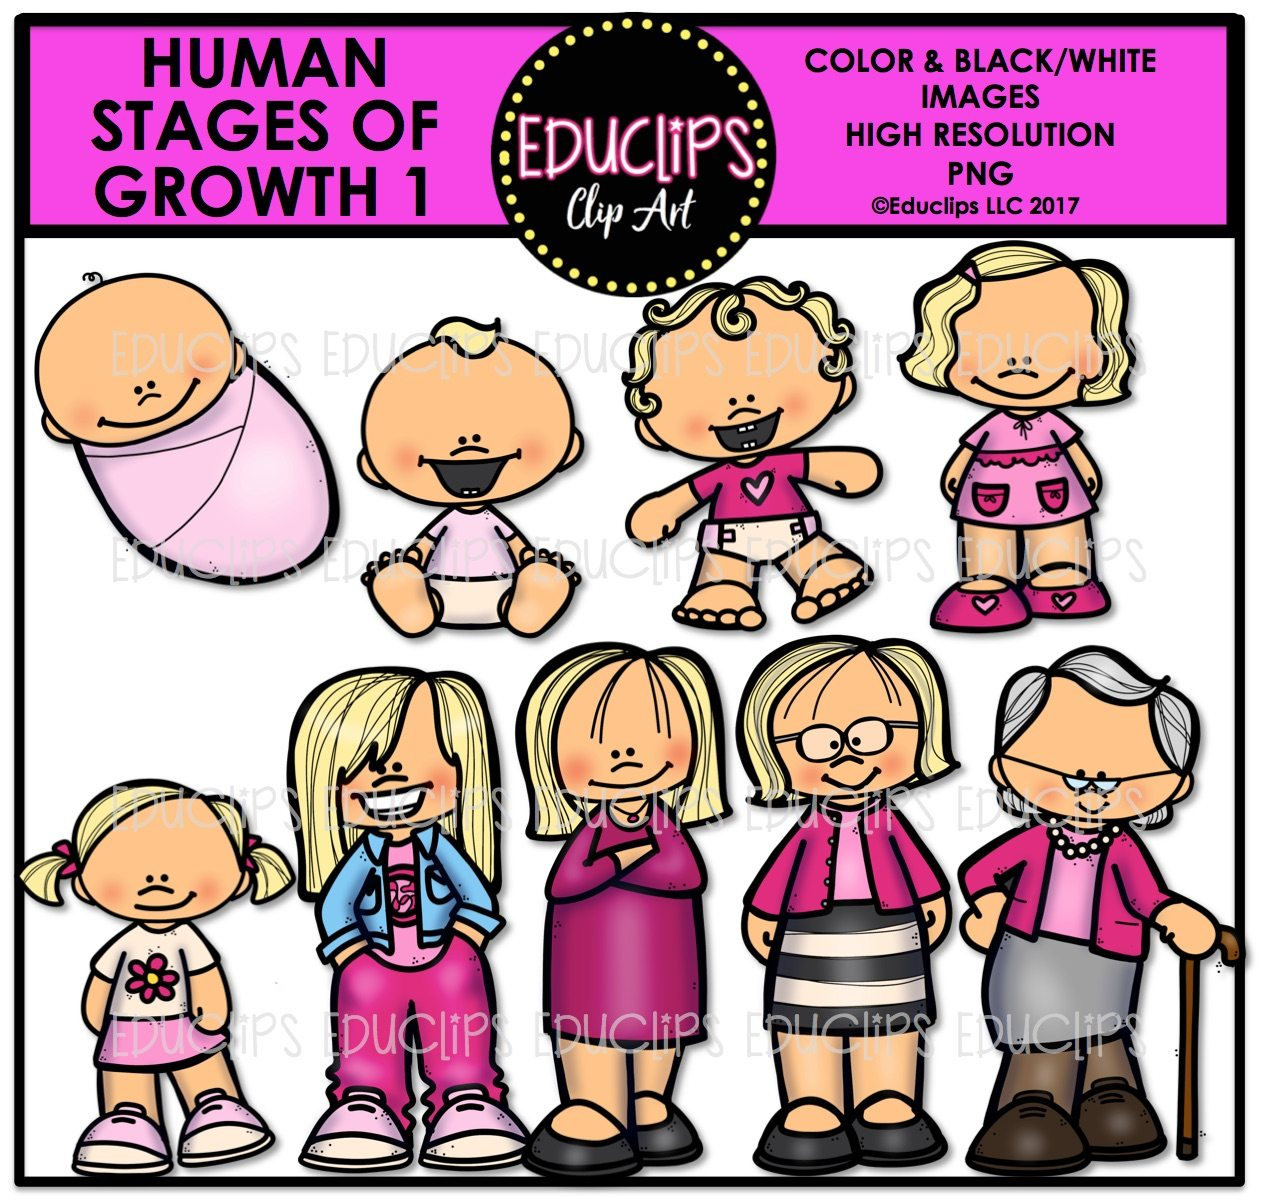 Human Stages Of Growth 1